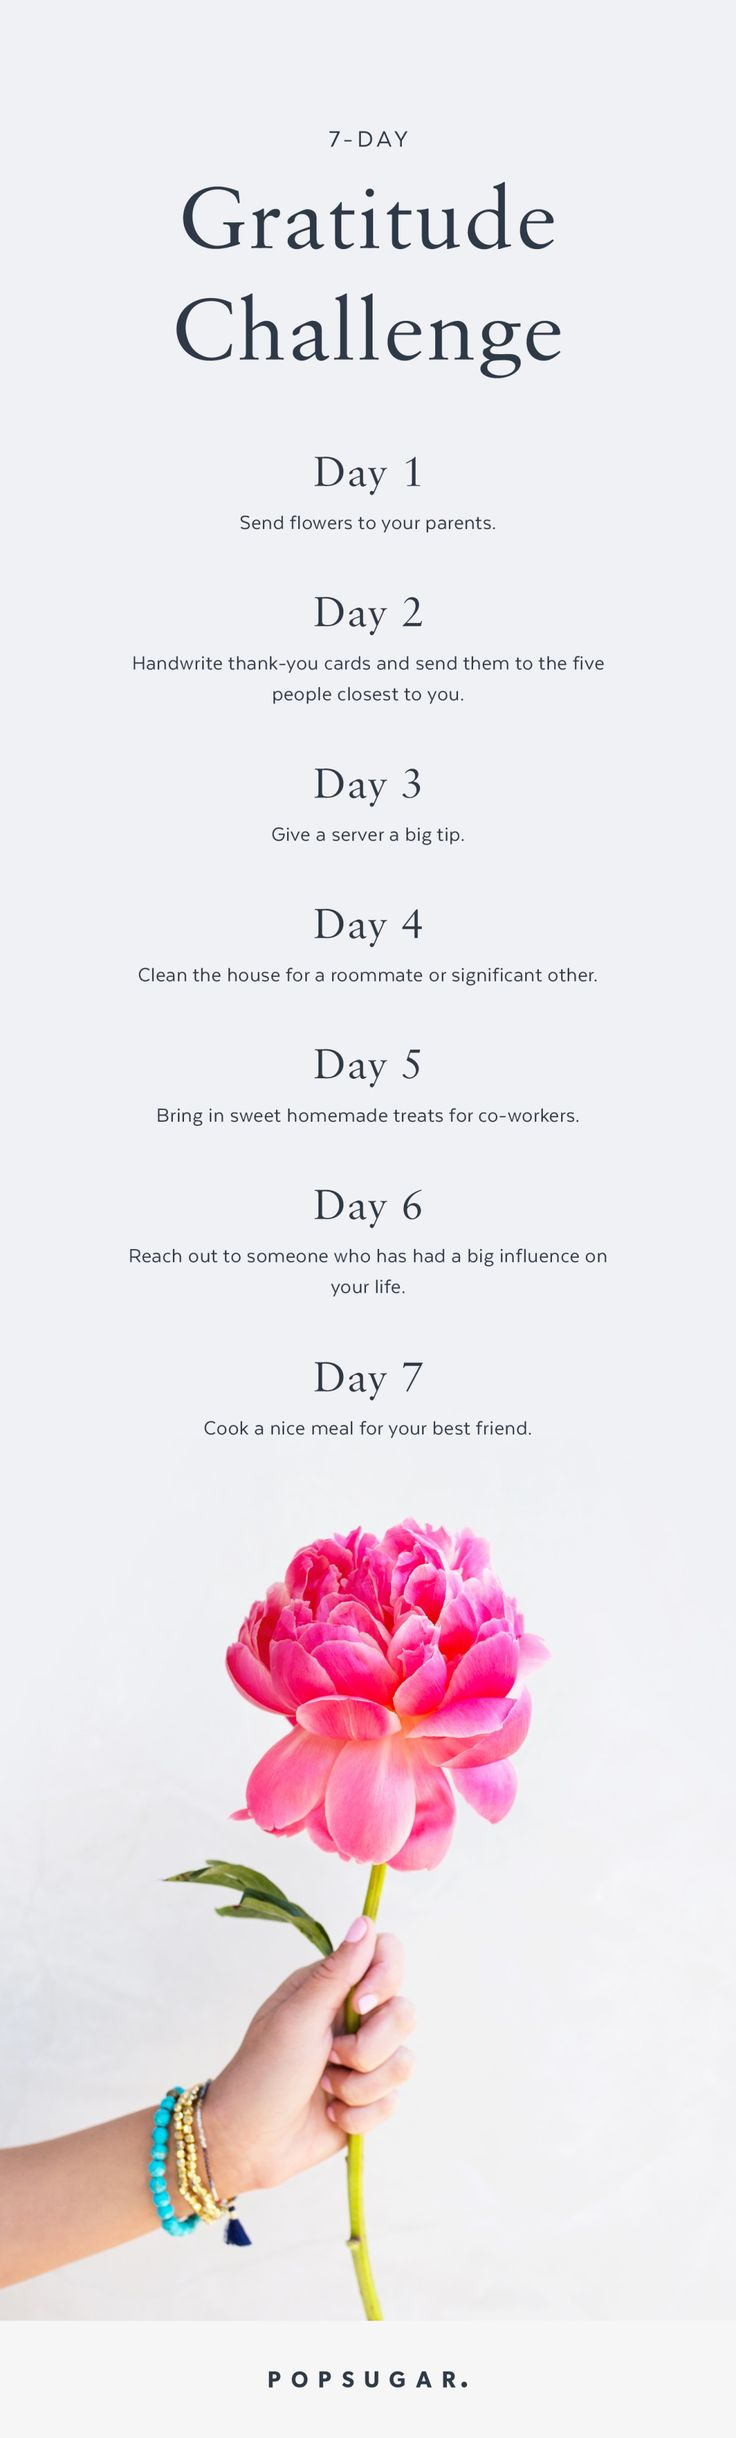 100 Day Challenge Worksheet Aria Studios Home - Show your appreciation with this 7 day gratitude challenge